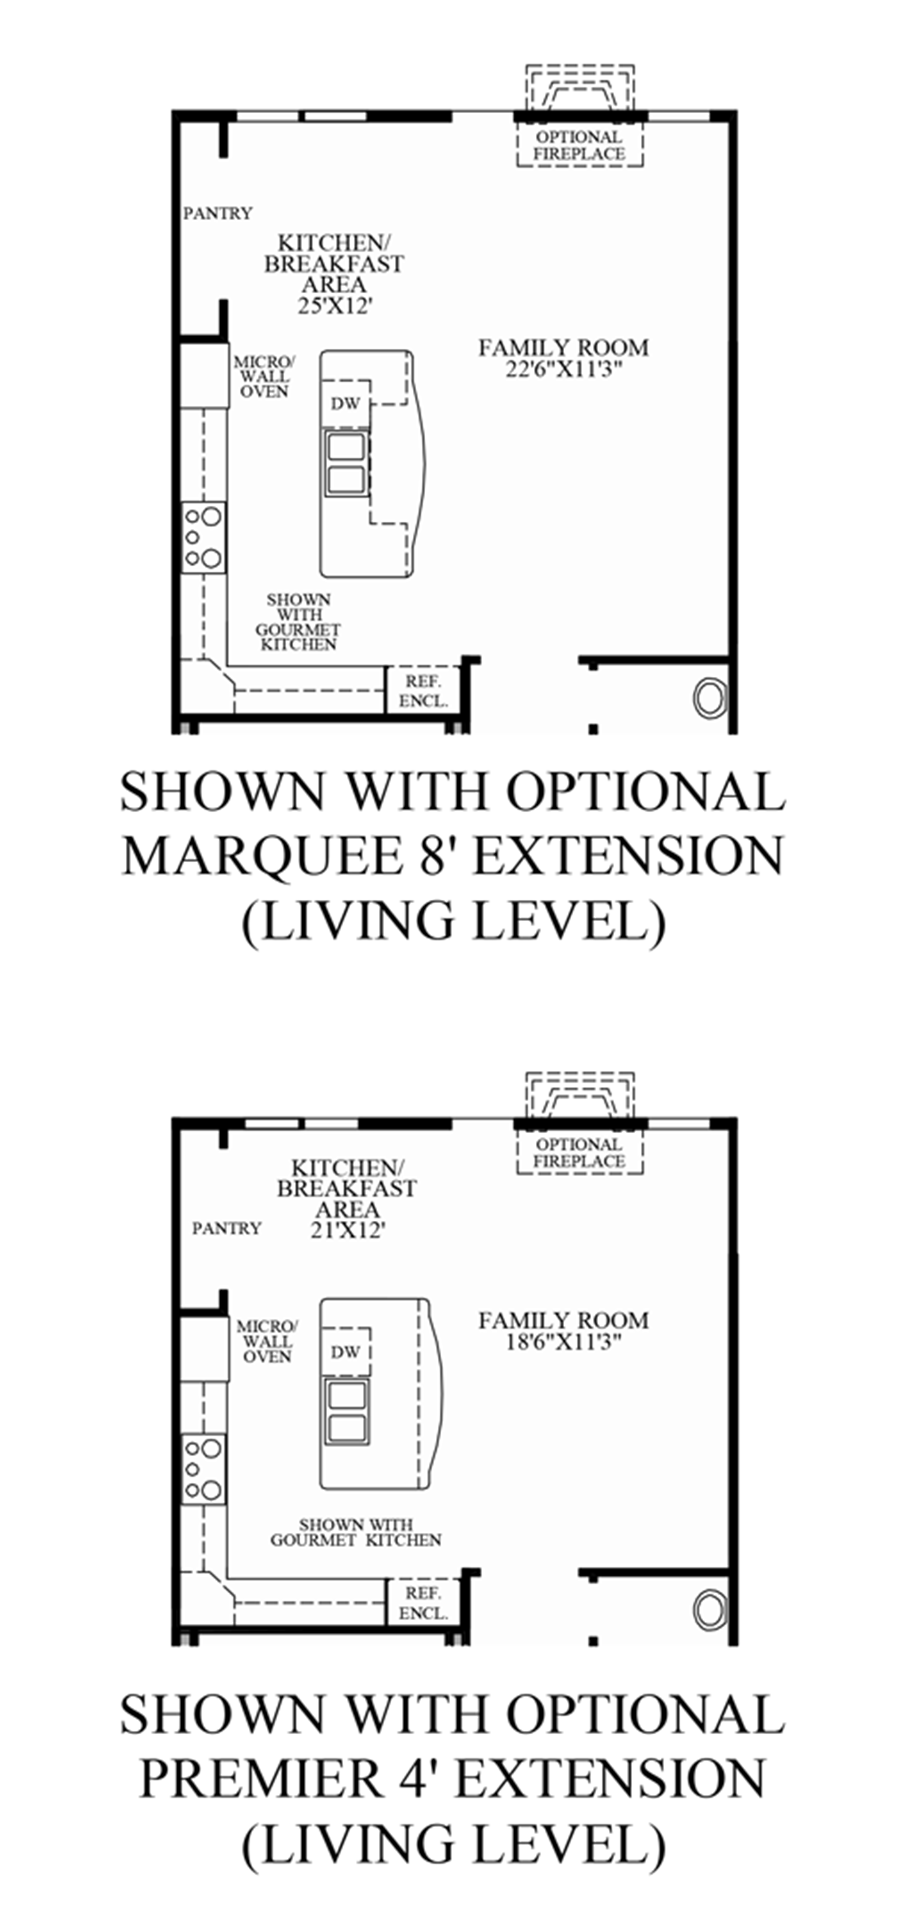 Optional Living Level Extensions (Living Level Entry) Floor Plan